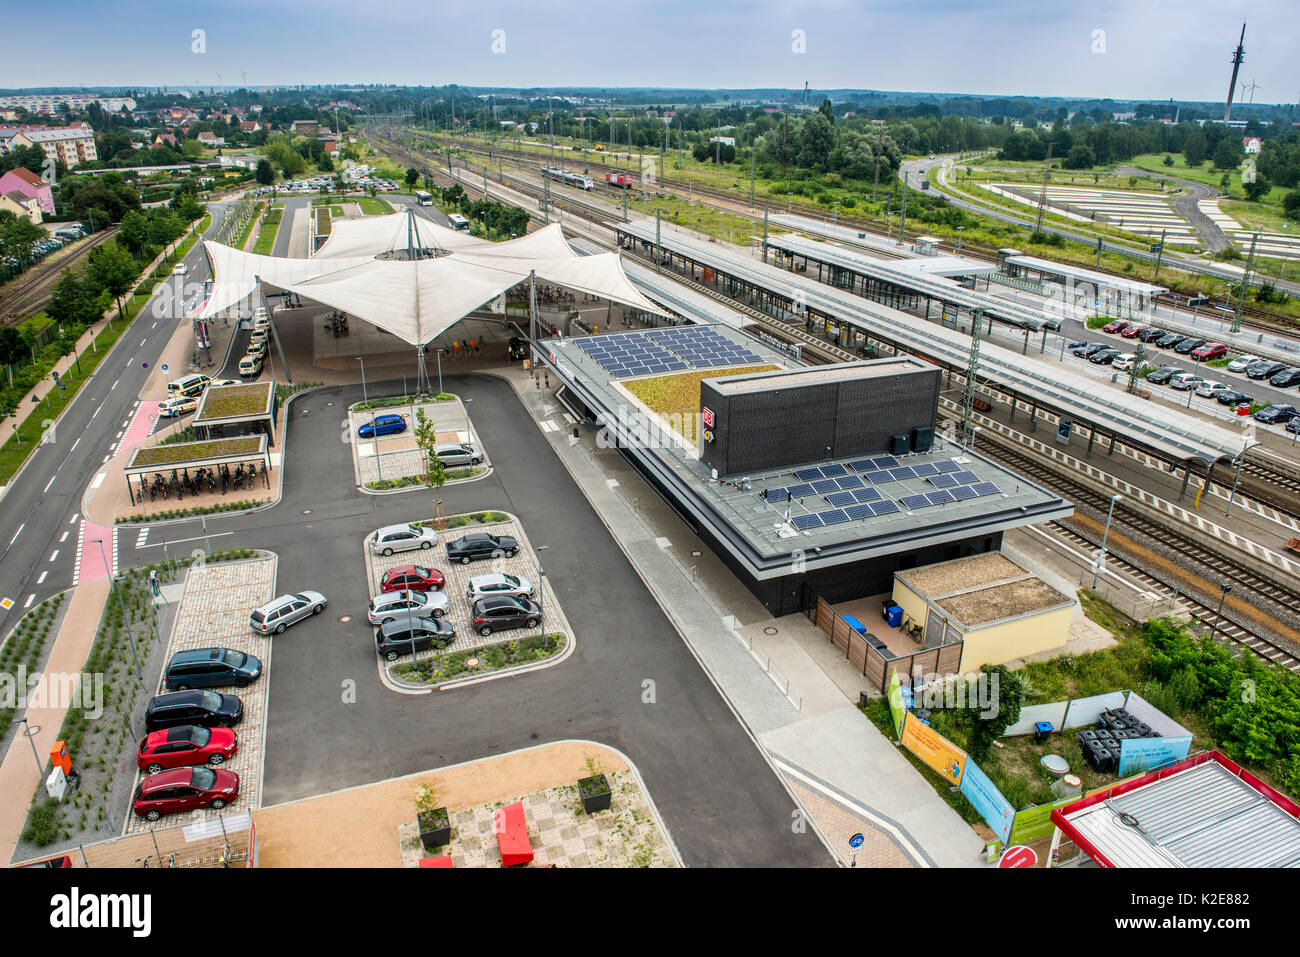 Environmentally friendly railway station, Wittenberg, Saxony-Anhalt, Germany - Stock Image